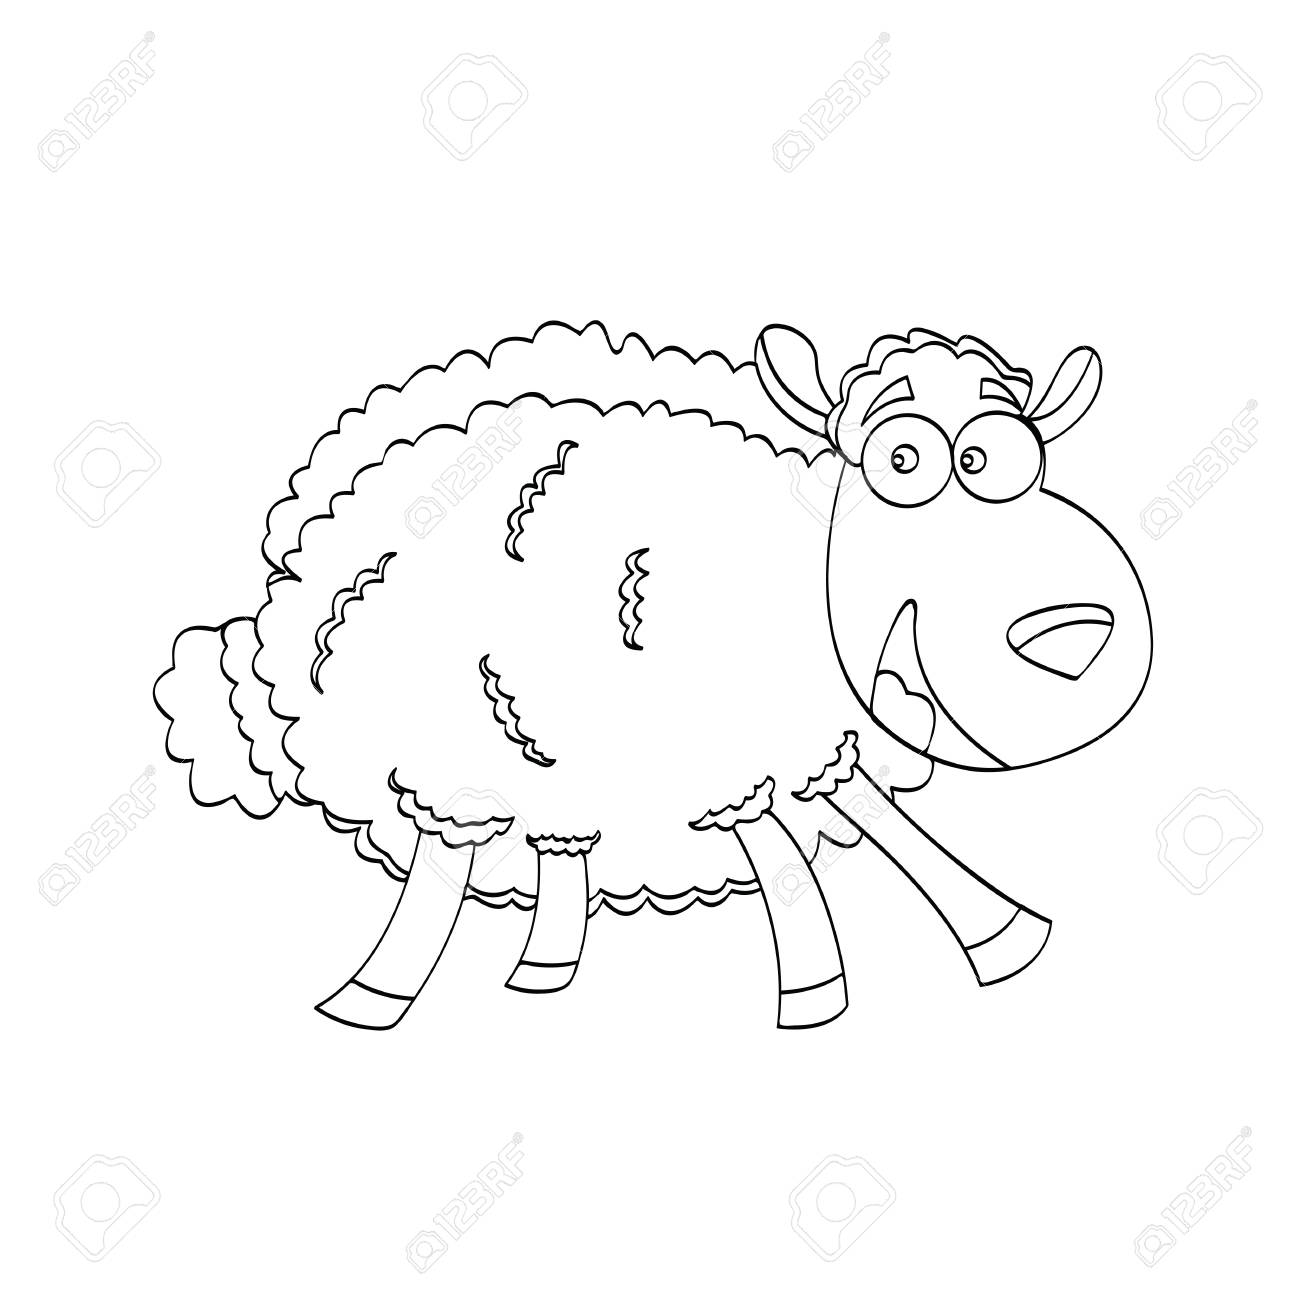 Illustration of sheep cartoon animal for kids drawing or painting game stock vector 96446836